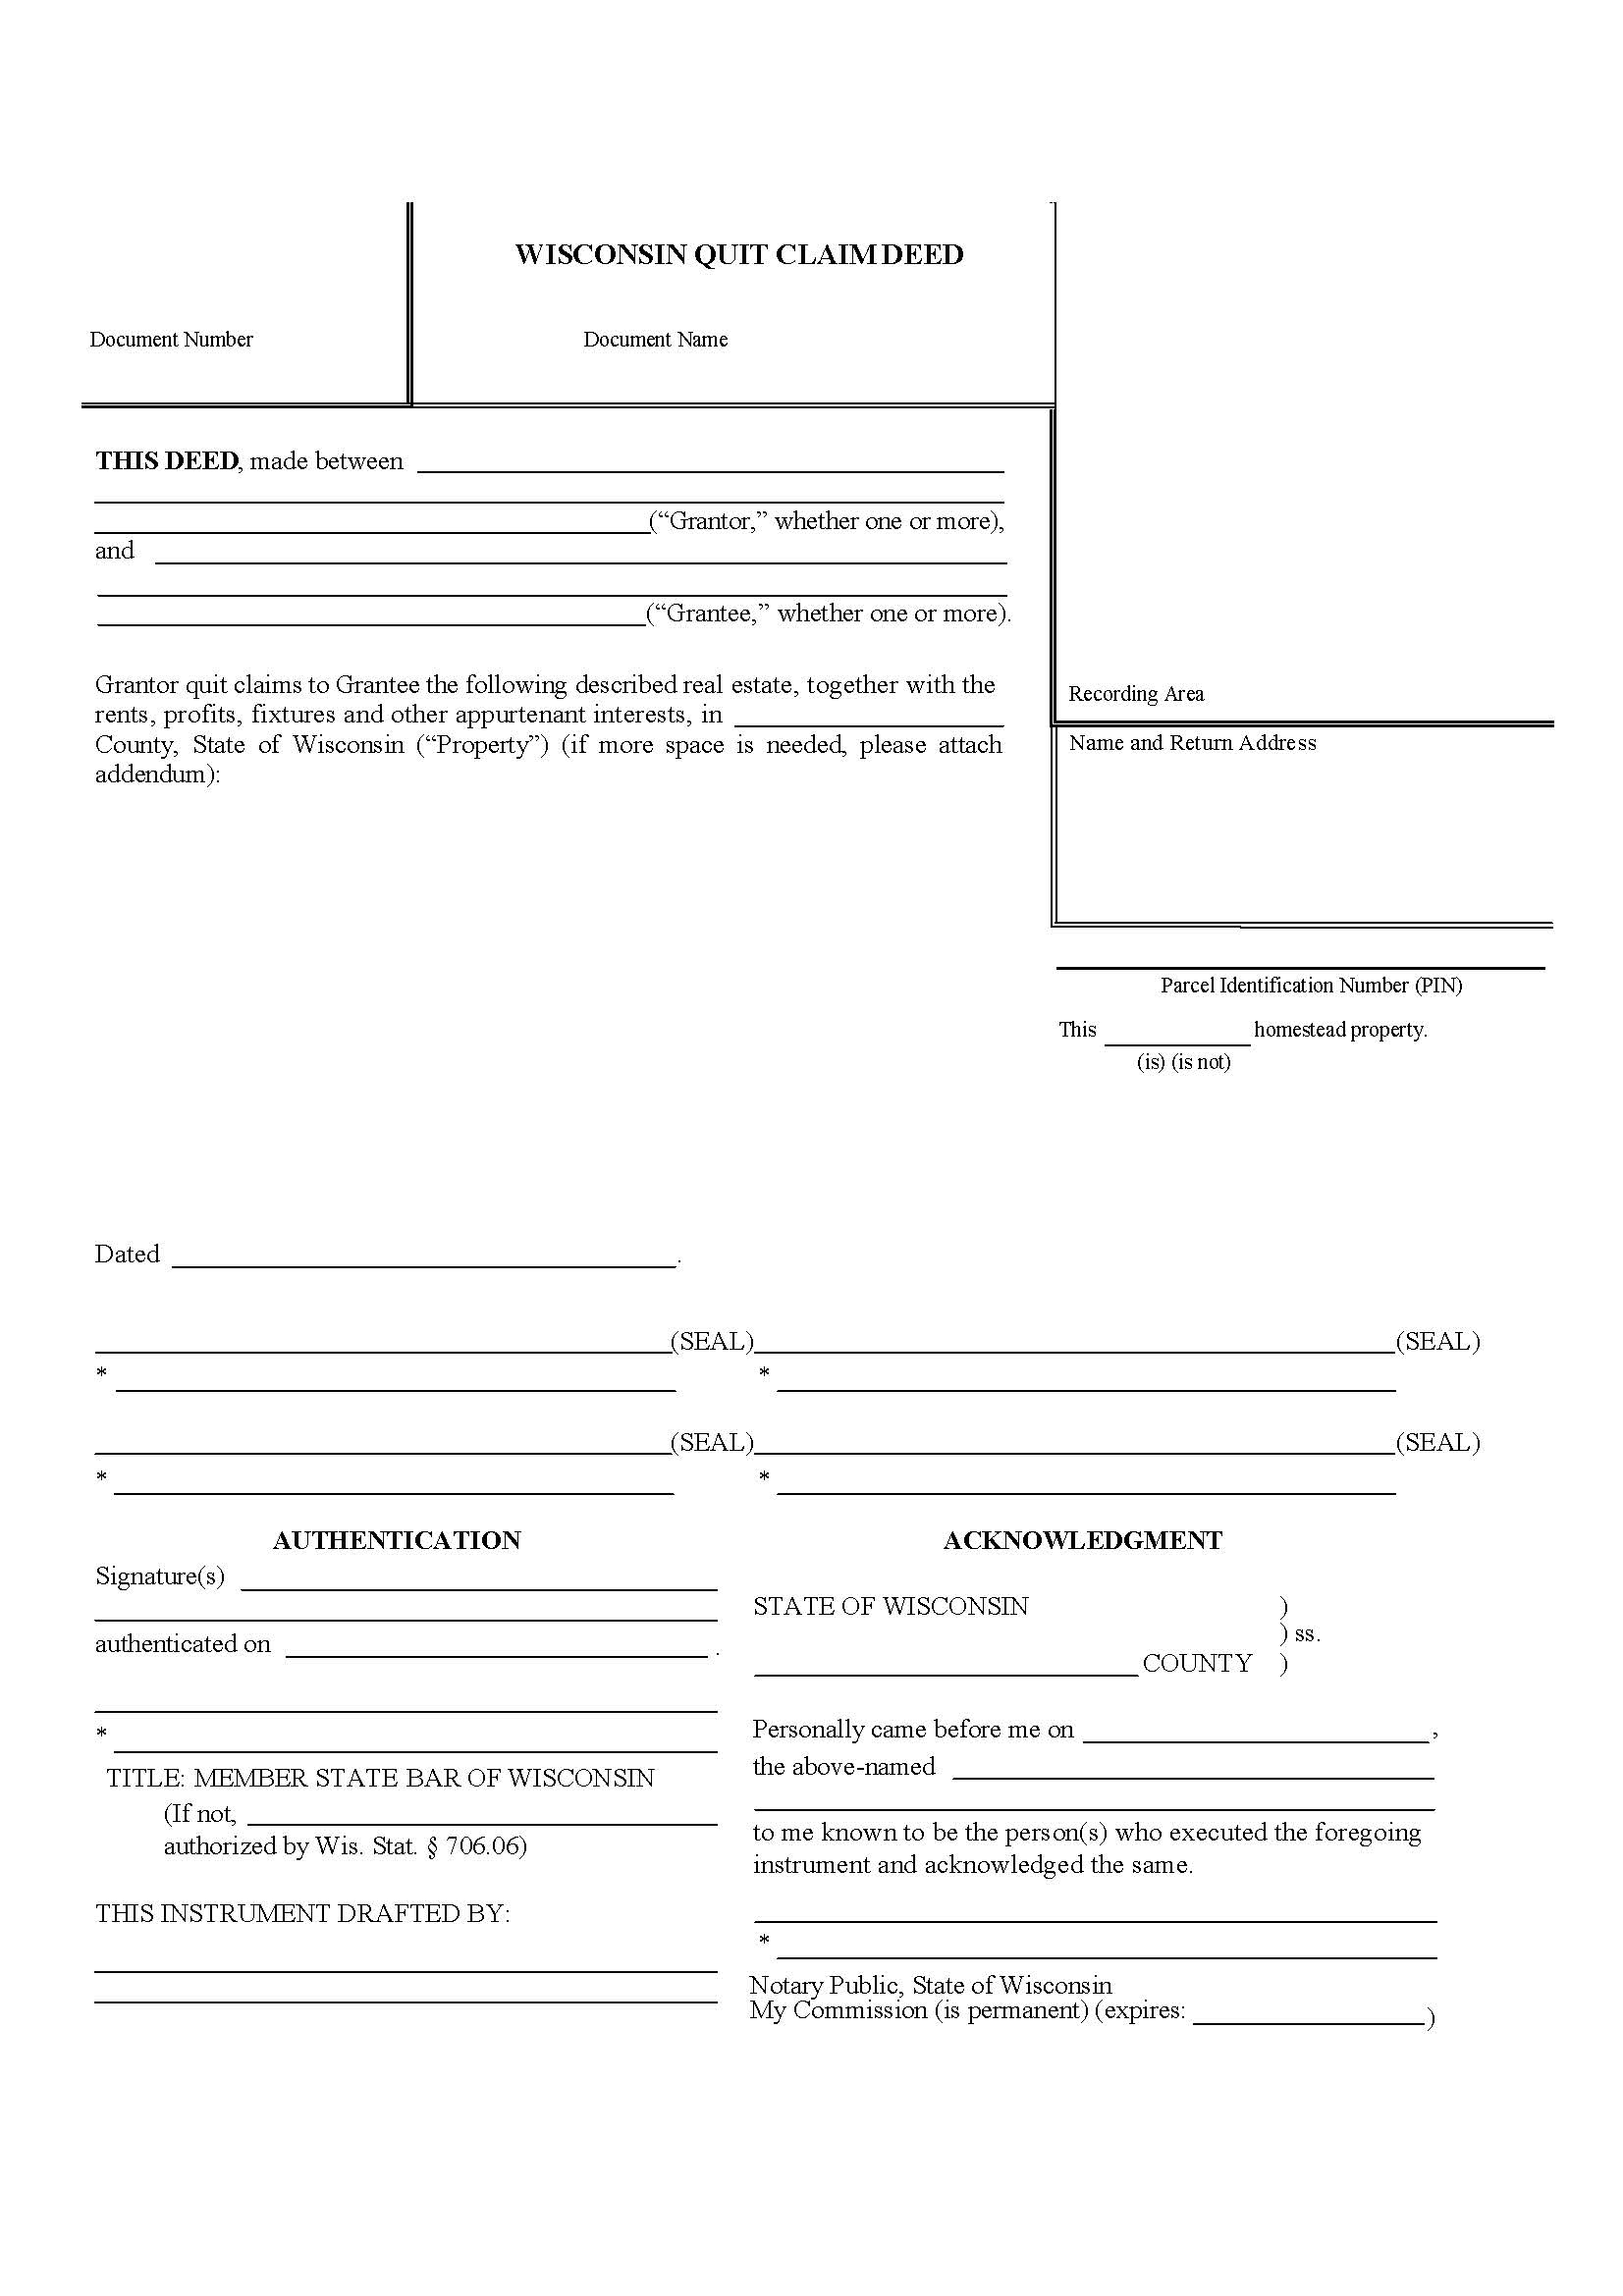 quit claim deed form wisconsin  Wisconsin Quit Claim Deed Form - Deed Forms : Deed Forms